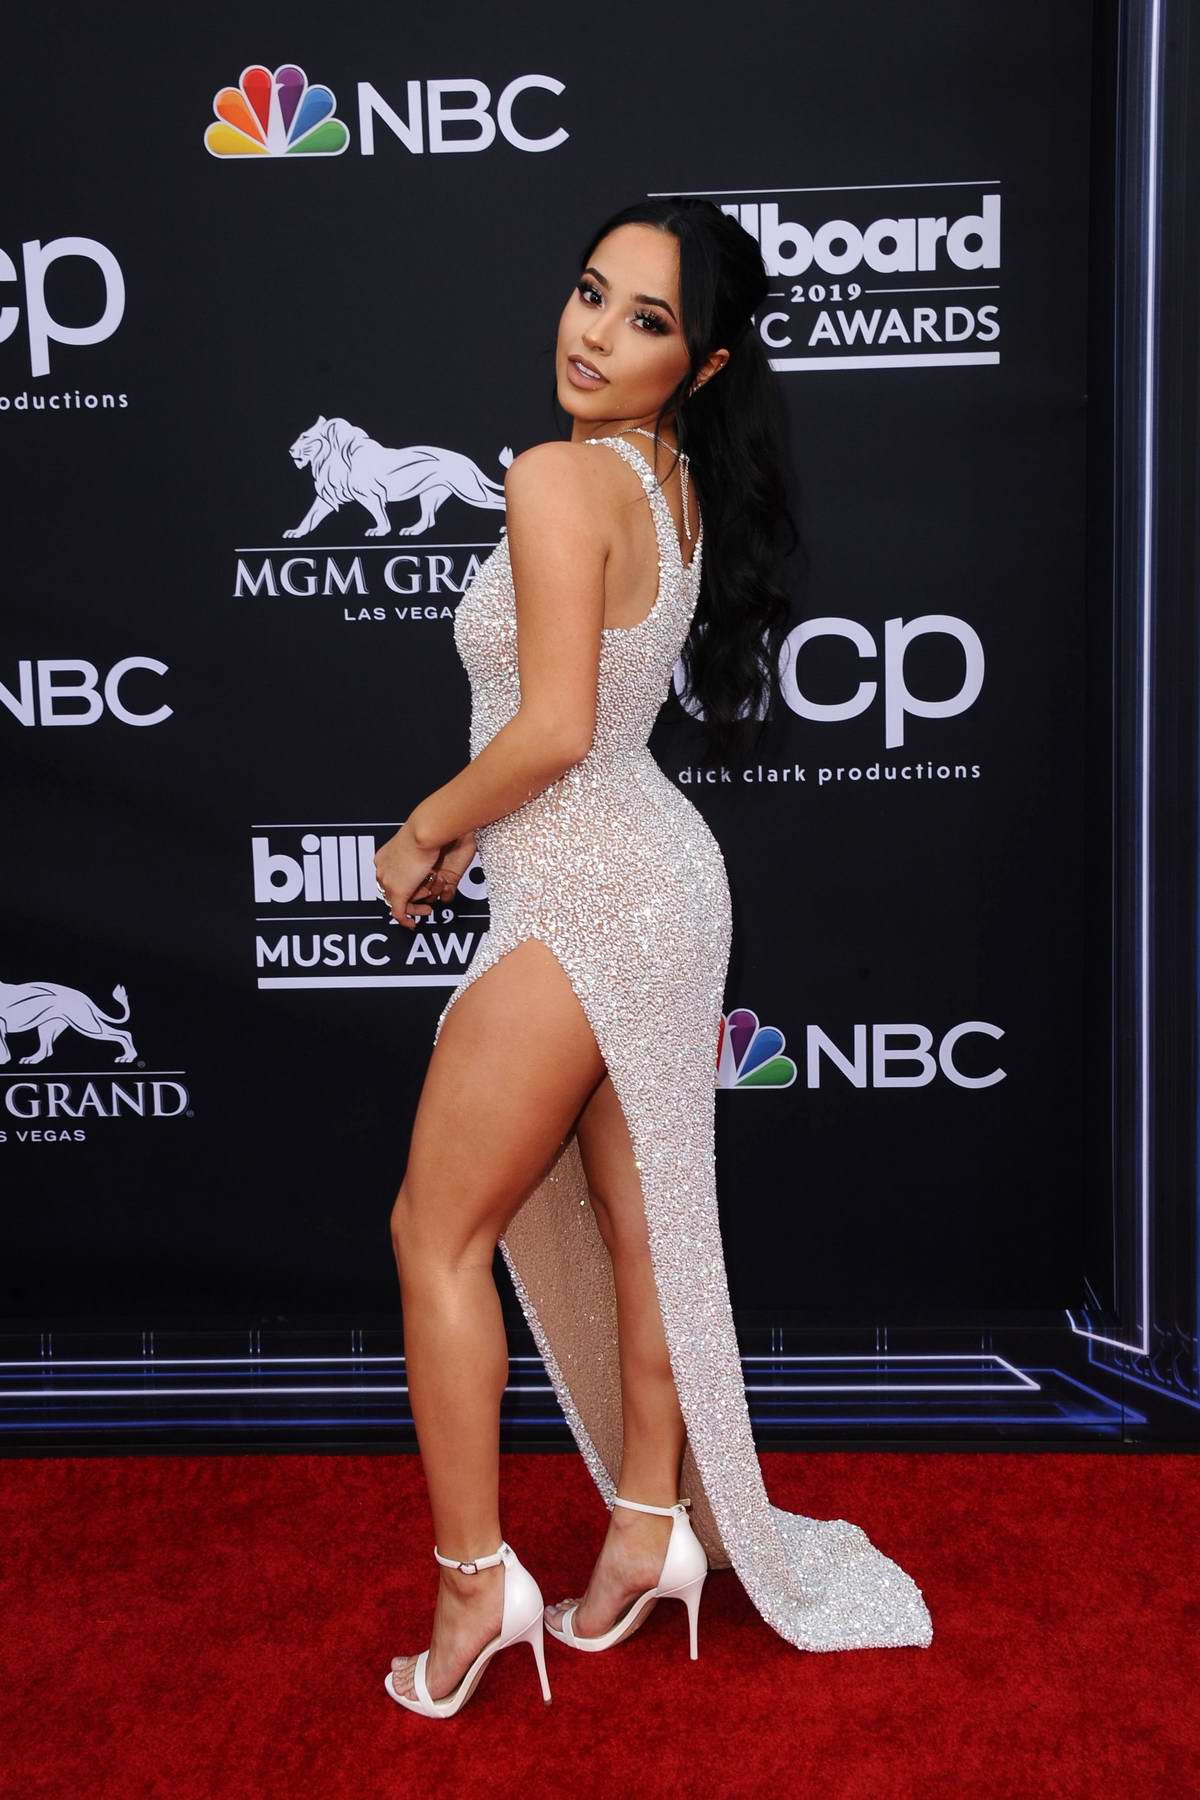 Becky G attends the 2019 Billboard Music Awards at MGM Grand Garden Arena in Las Vegas, Nevada